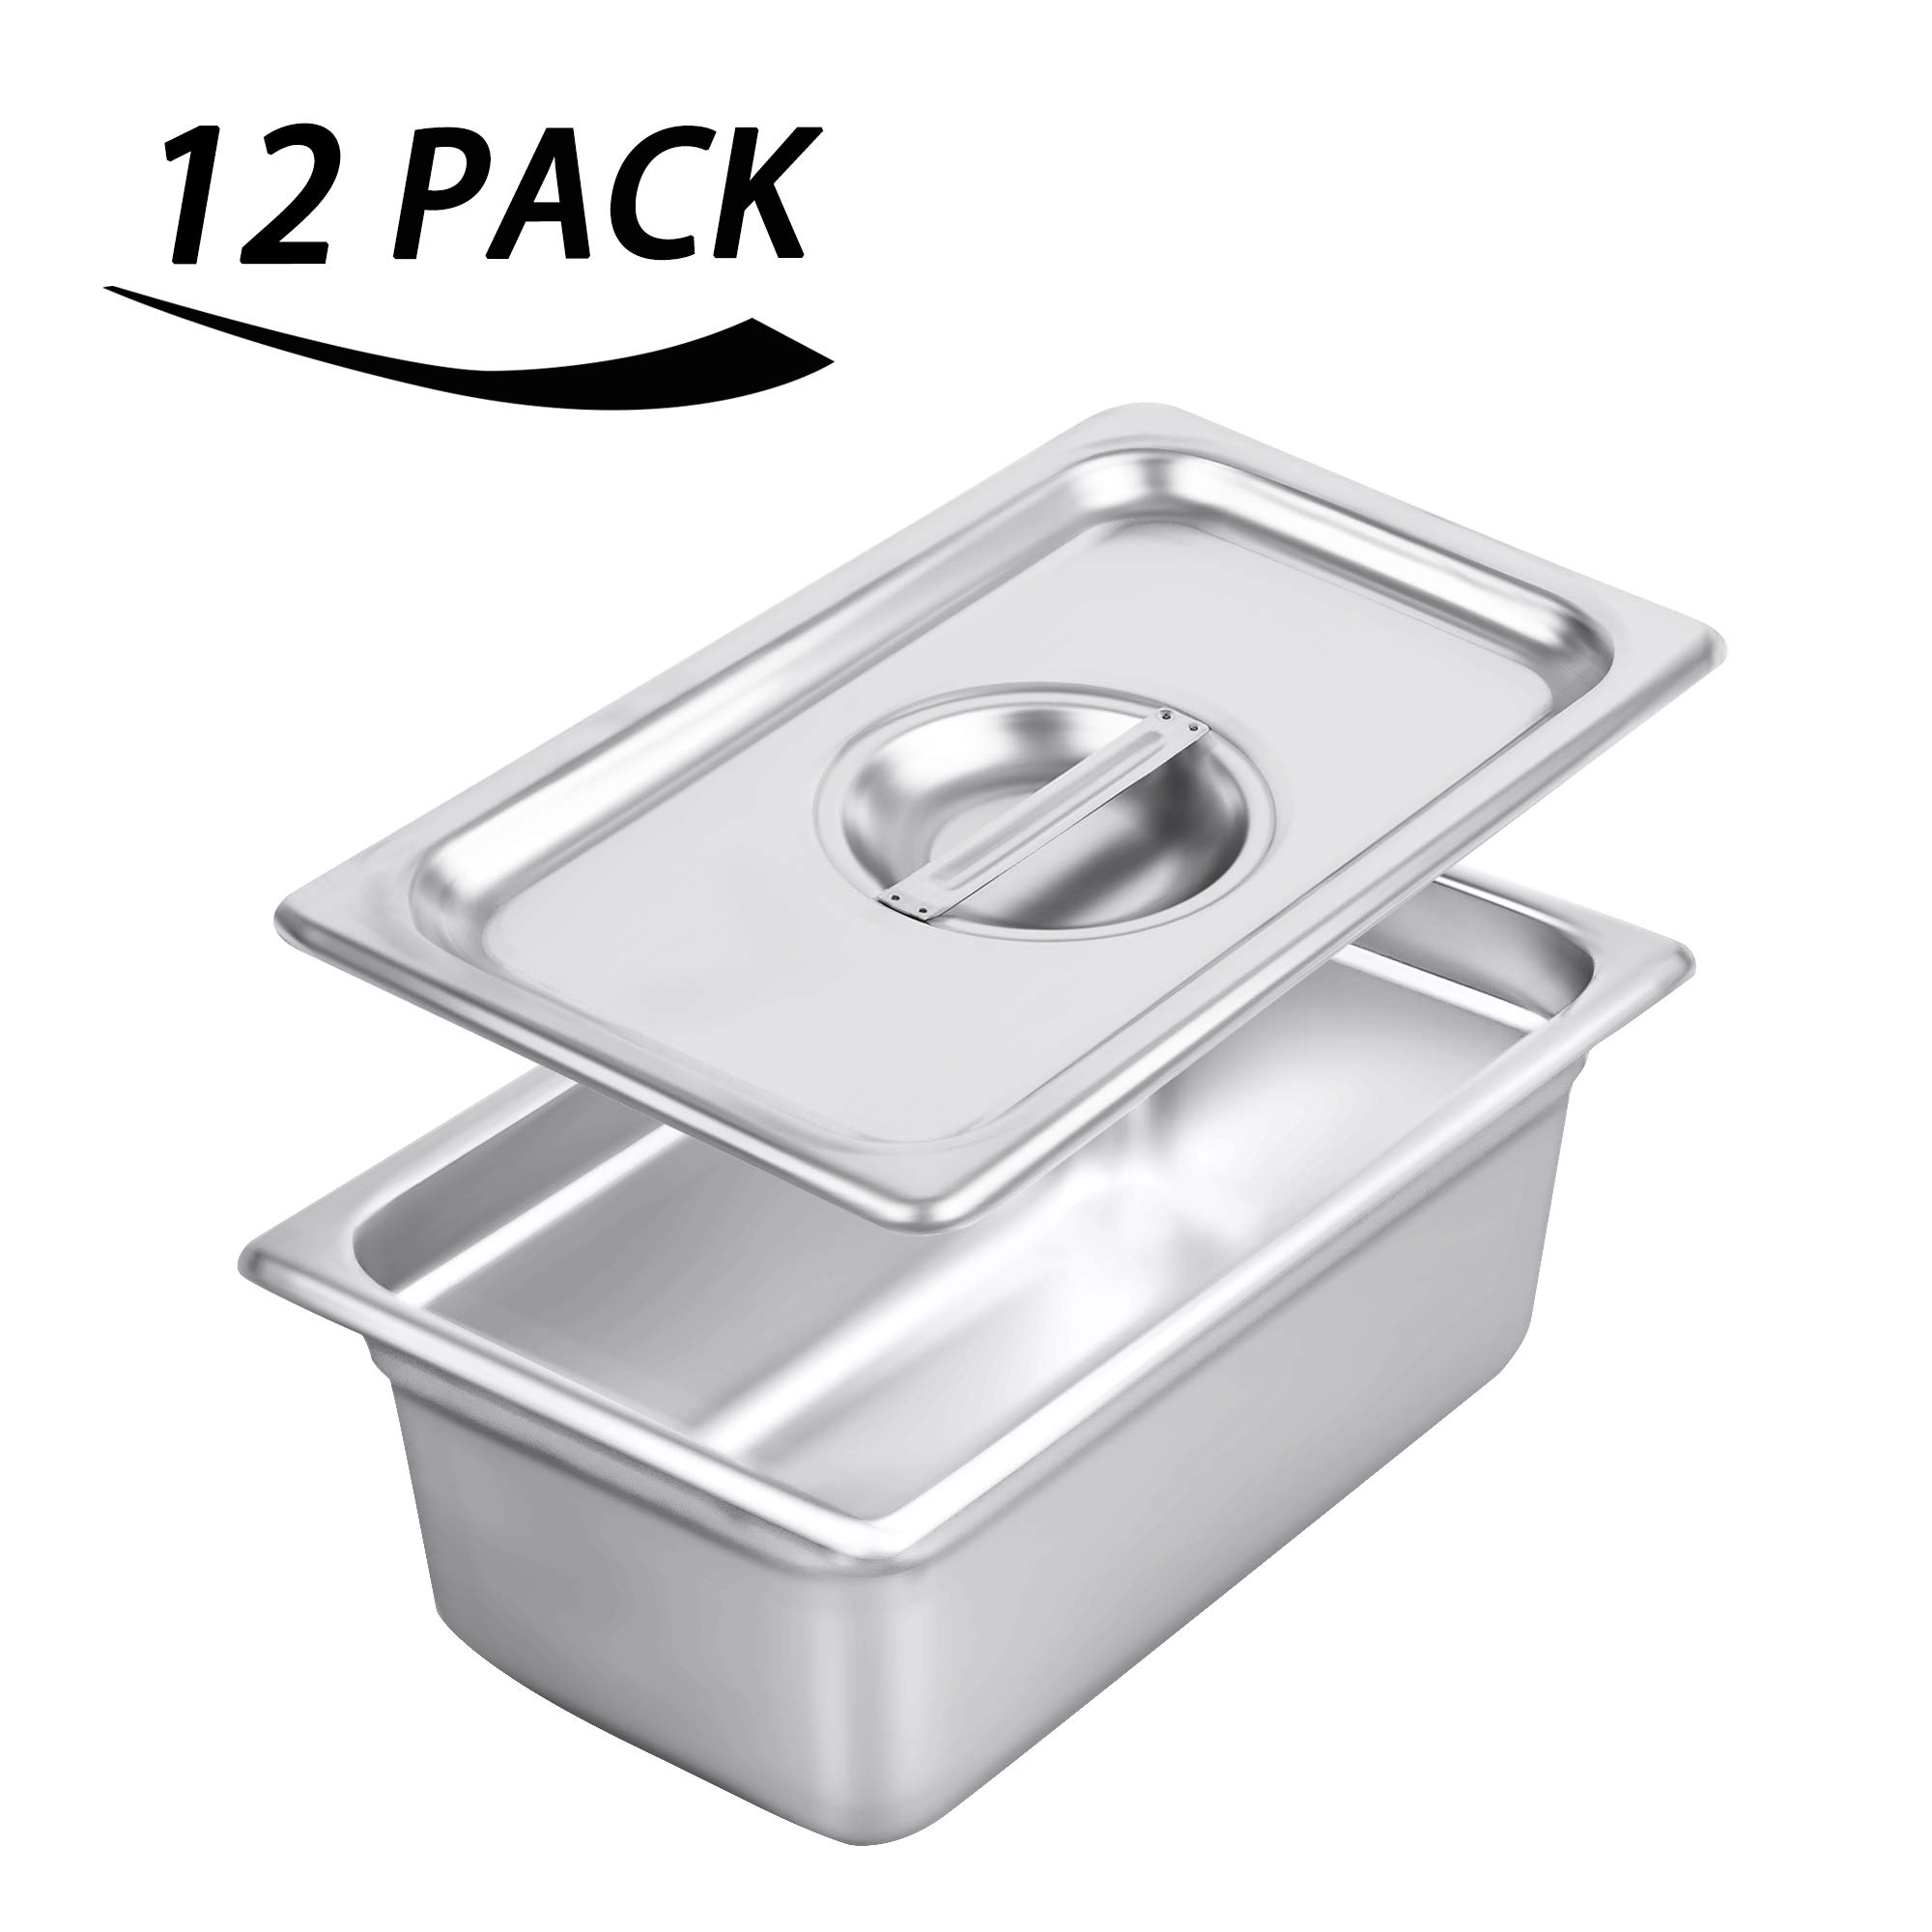 1/4 Size Stainless Steel Solid Steam Table Pan Cover, Kitma Pan Lids, Non-Stick Surface, Lid for 1/4 Size Steam Pans with Handle - 12 Pack